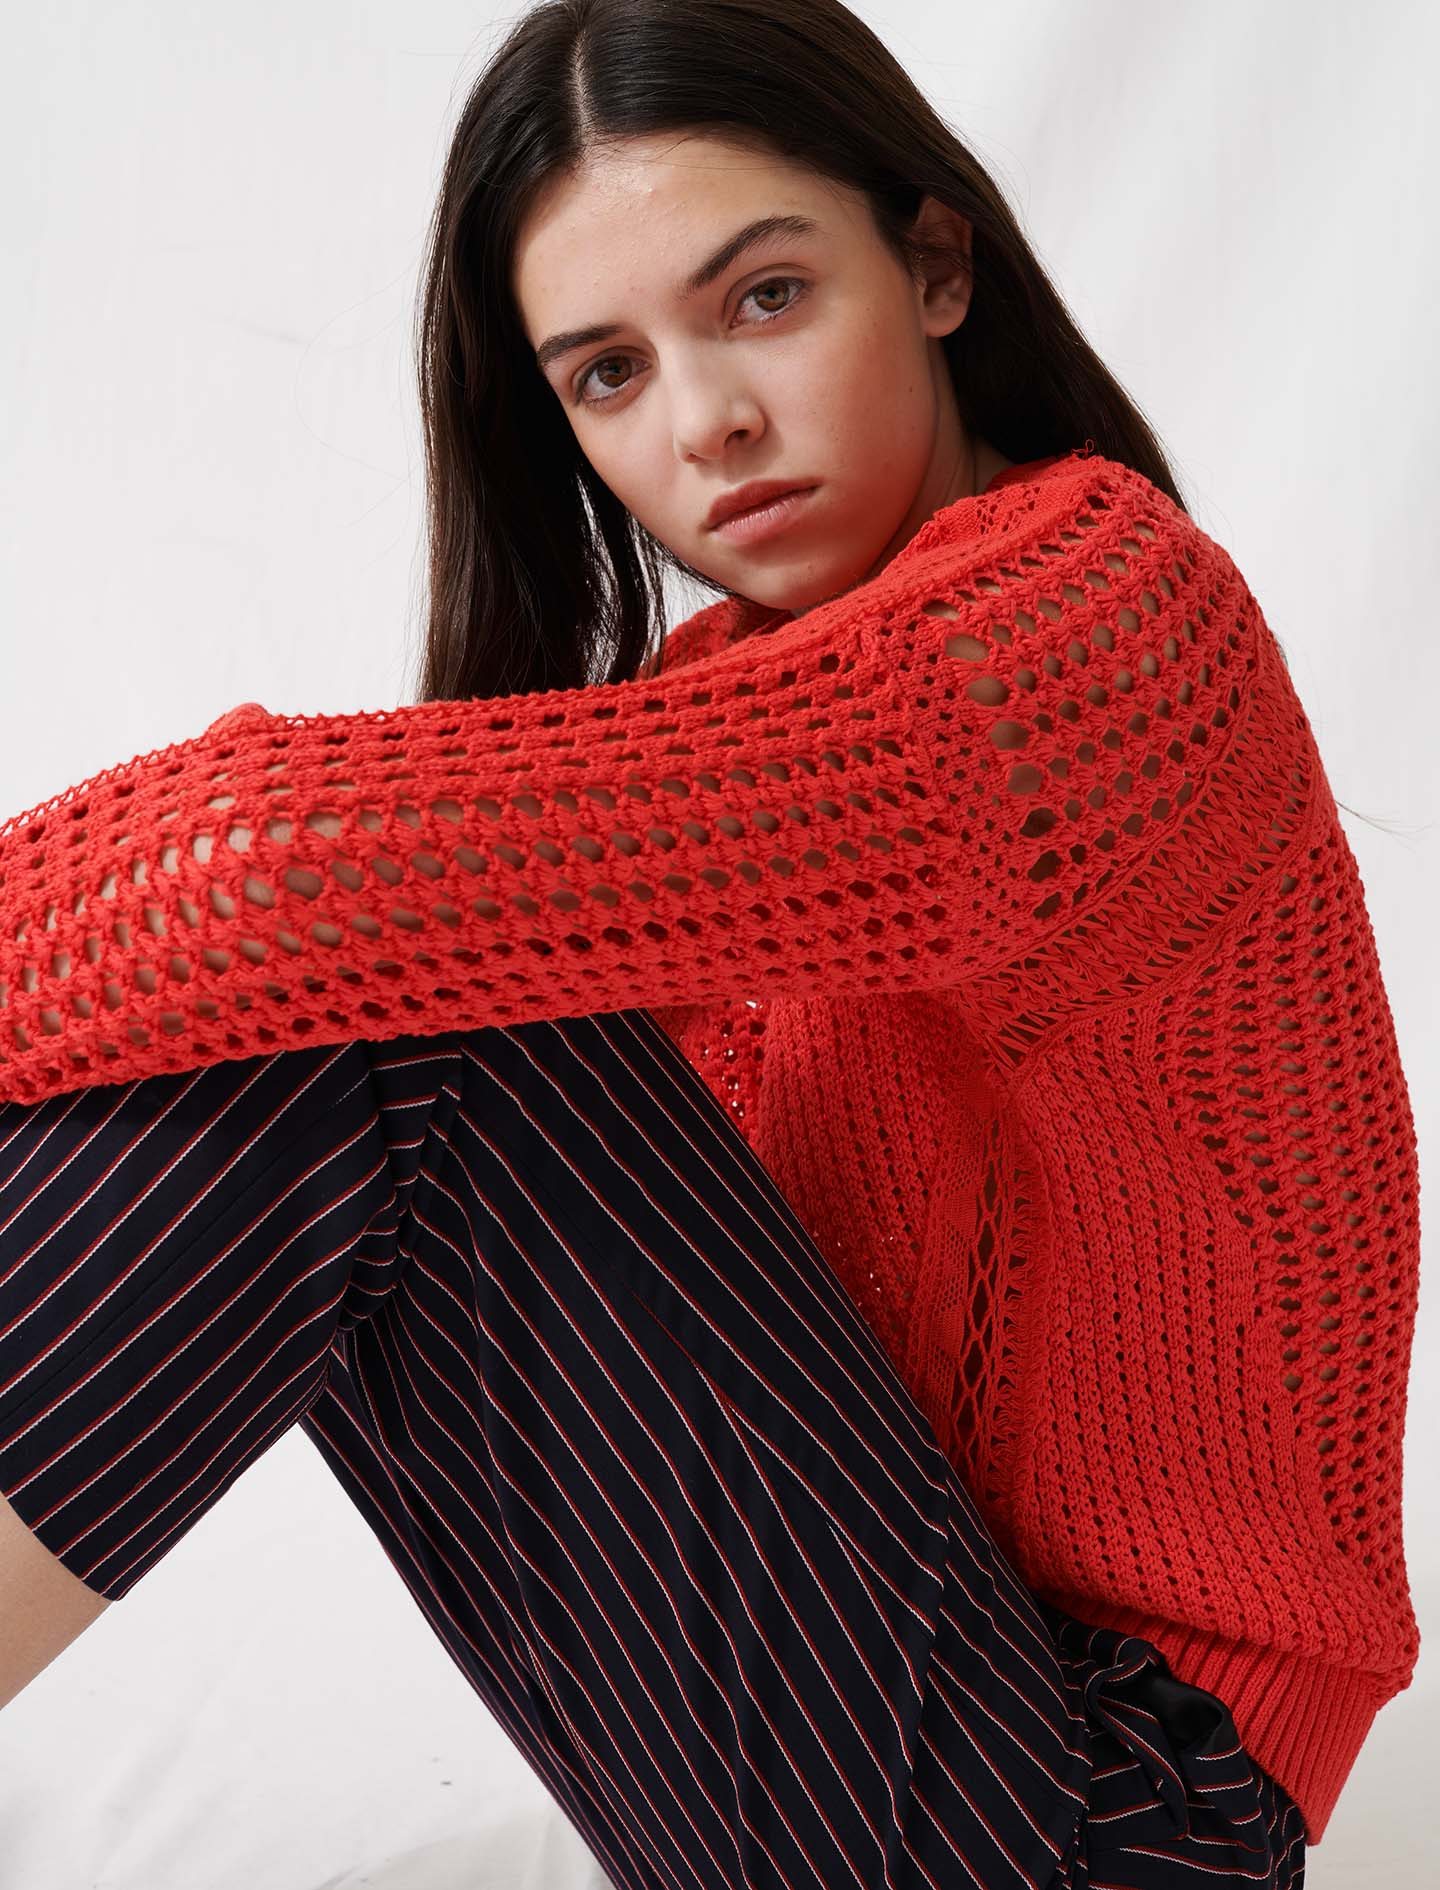 Red crochet-style jumper - Red